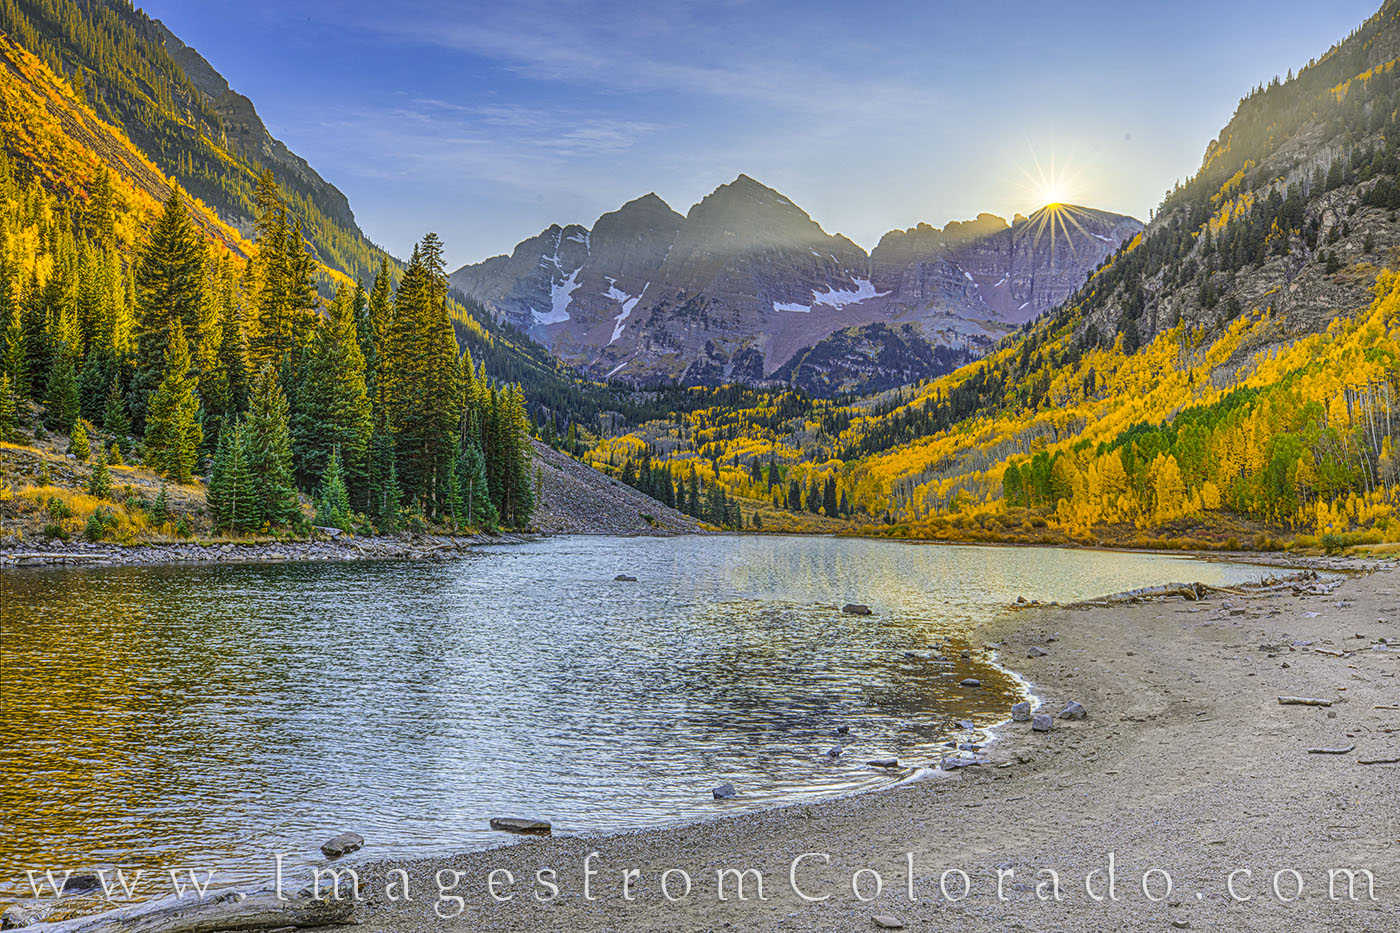 aspen, maroon bells, sunset, fall, autumn, maroon lake, elks range, maroon bells wilderness, photo